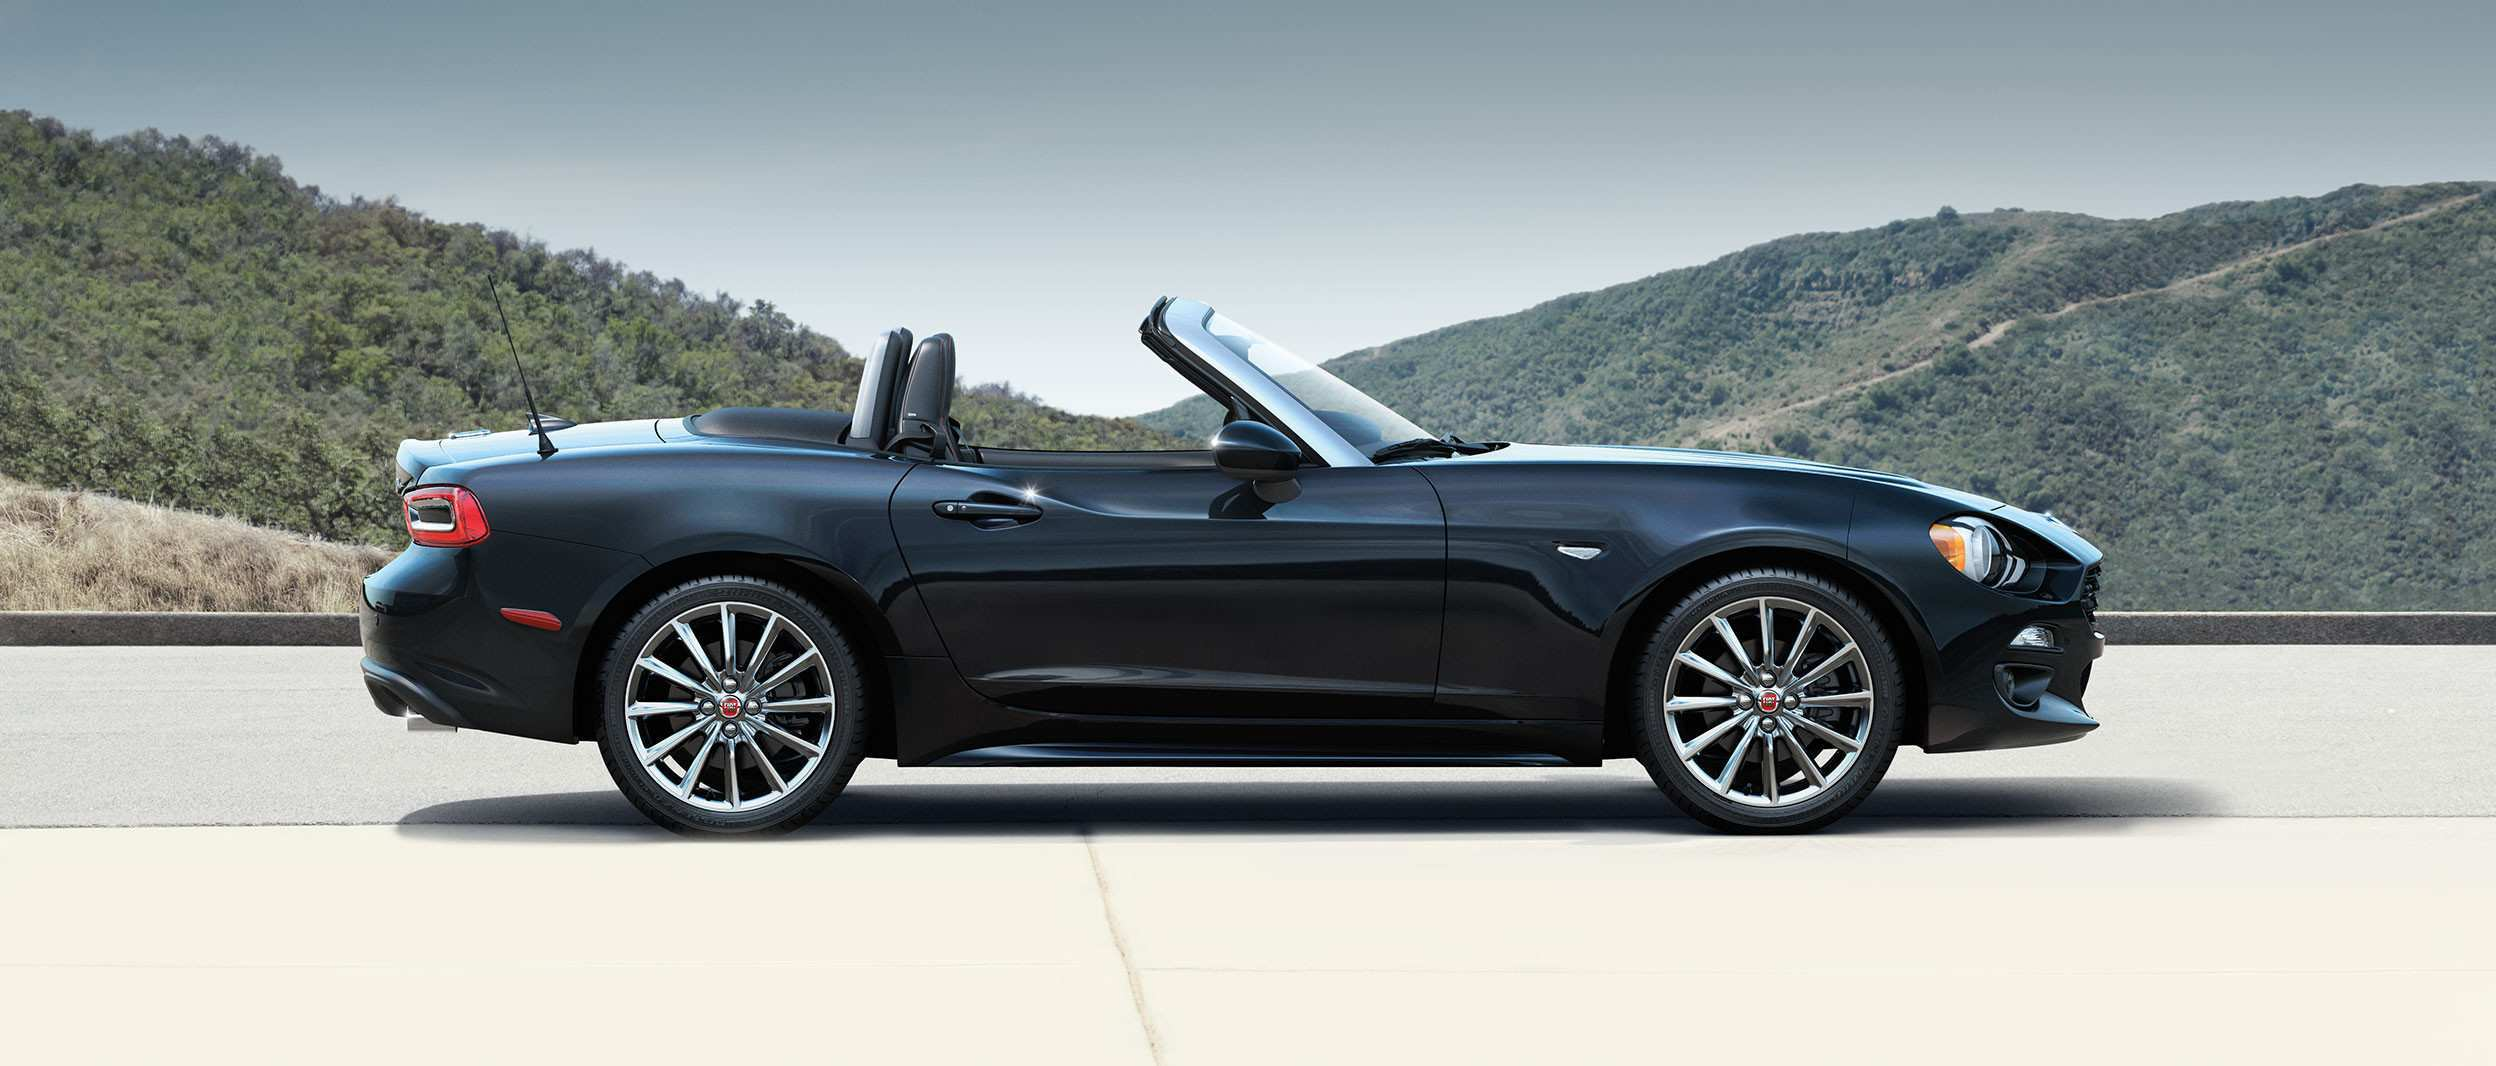 28 The Best 2019 Fiat Spider Redesign And Concept